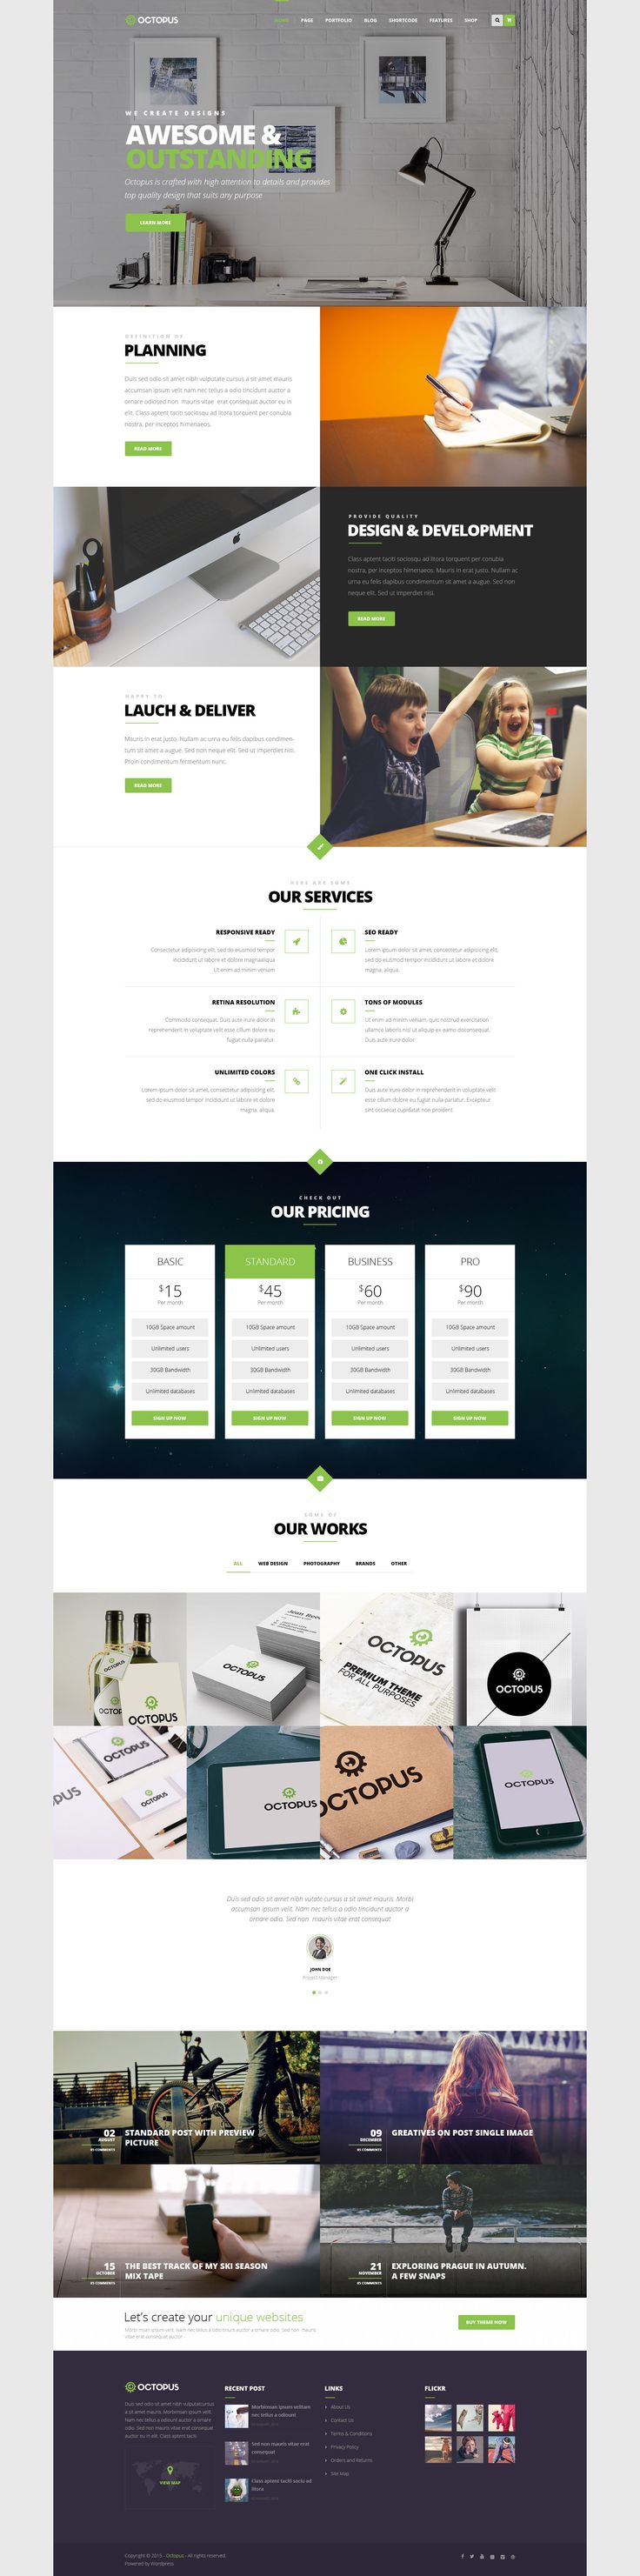 Octopus is a Modern Multipurpose Business WordPress #Theme suitable for any type of website. #Corporate #WP Download Now➝ http://www.downloadnewthemes.com/2015/07/modern-multipurpose-business-wordpress.html